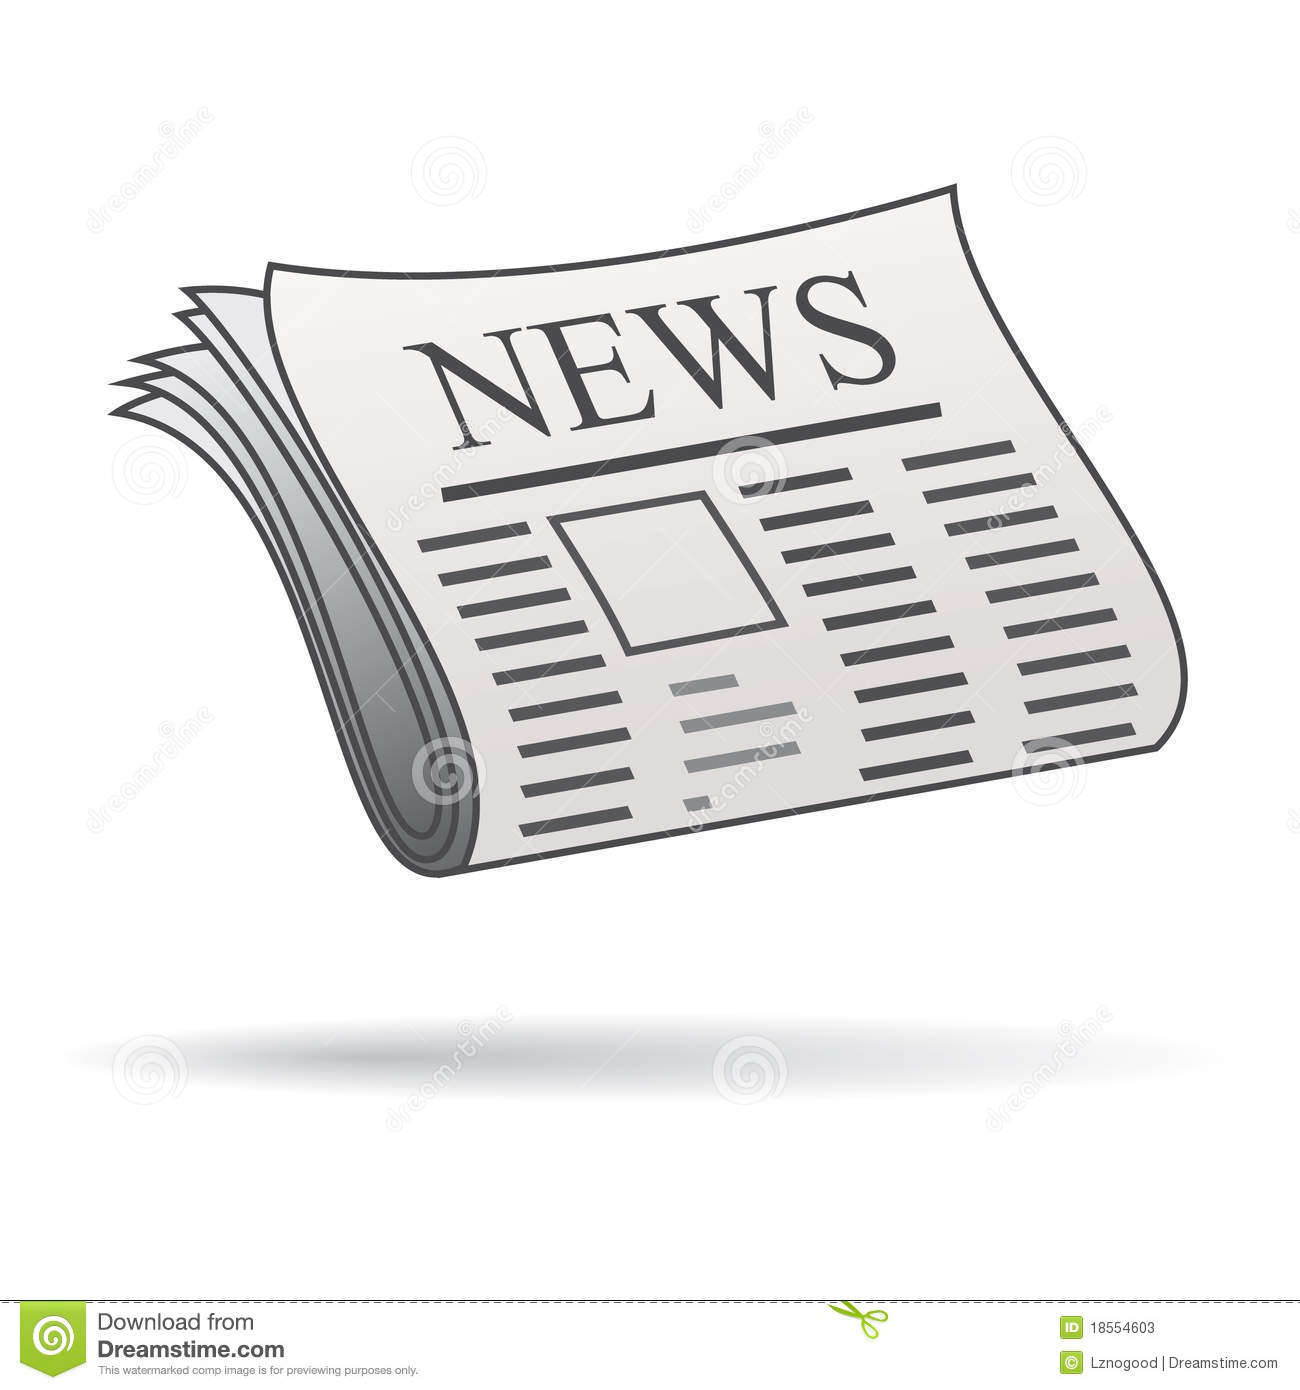 Newspaper Icon Stock Photos - Image: 18554603 School Desk Background